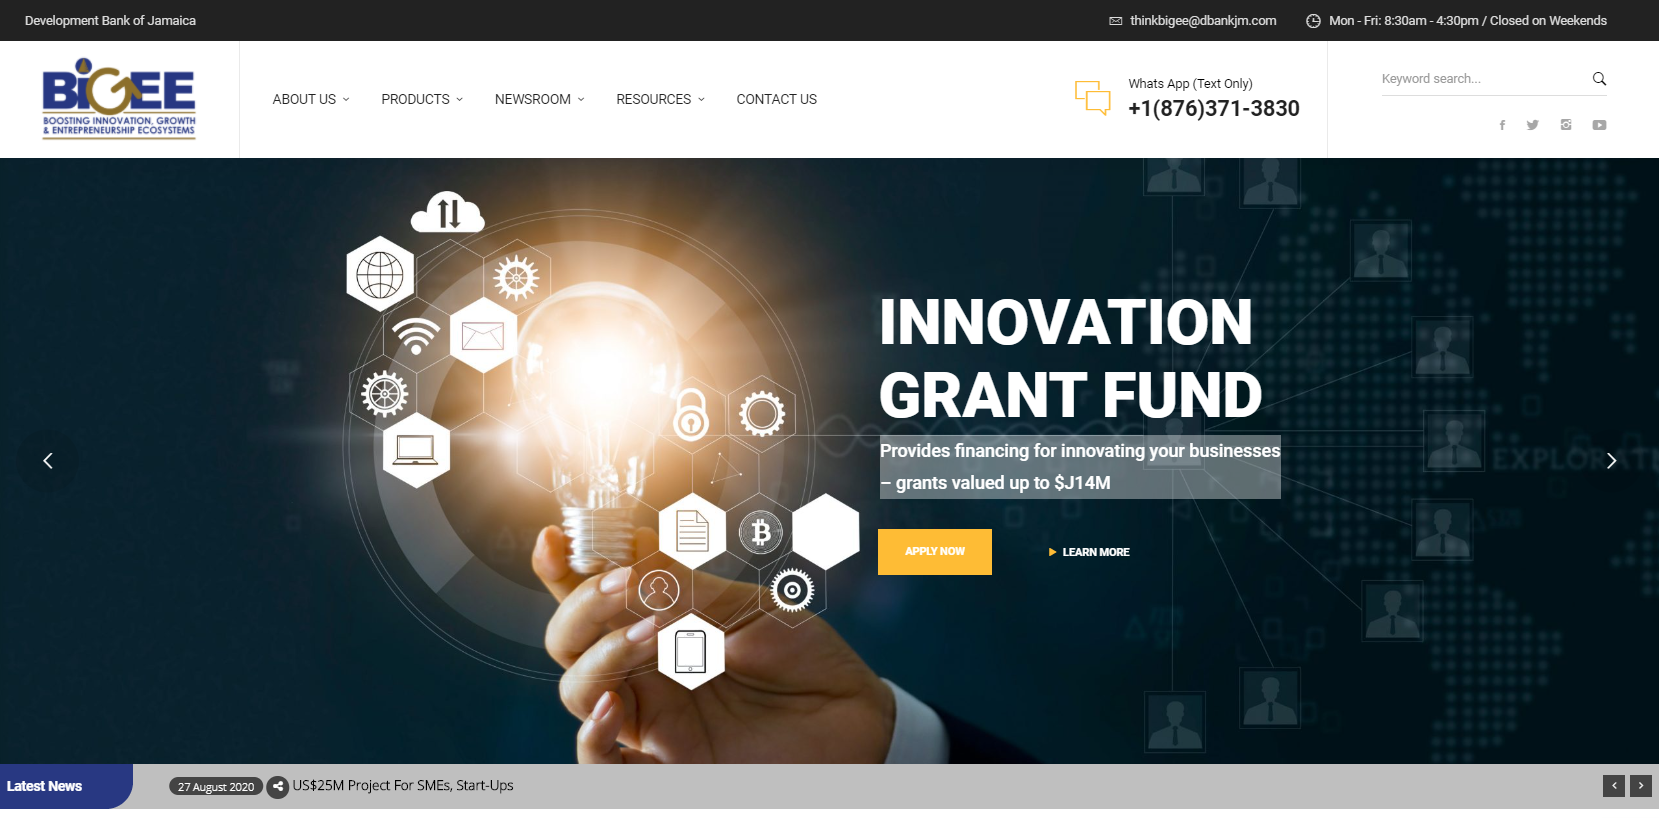 DBJ Microsite -  Boosting Innovation, Growth and Entrepreneurship Ecosystem (BIGEE)